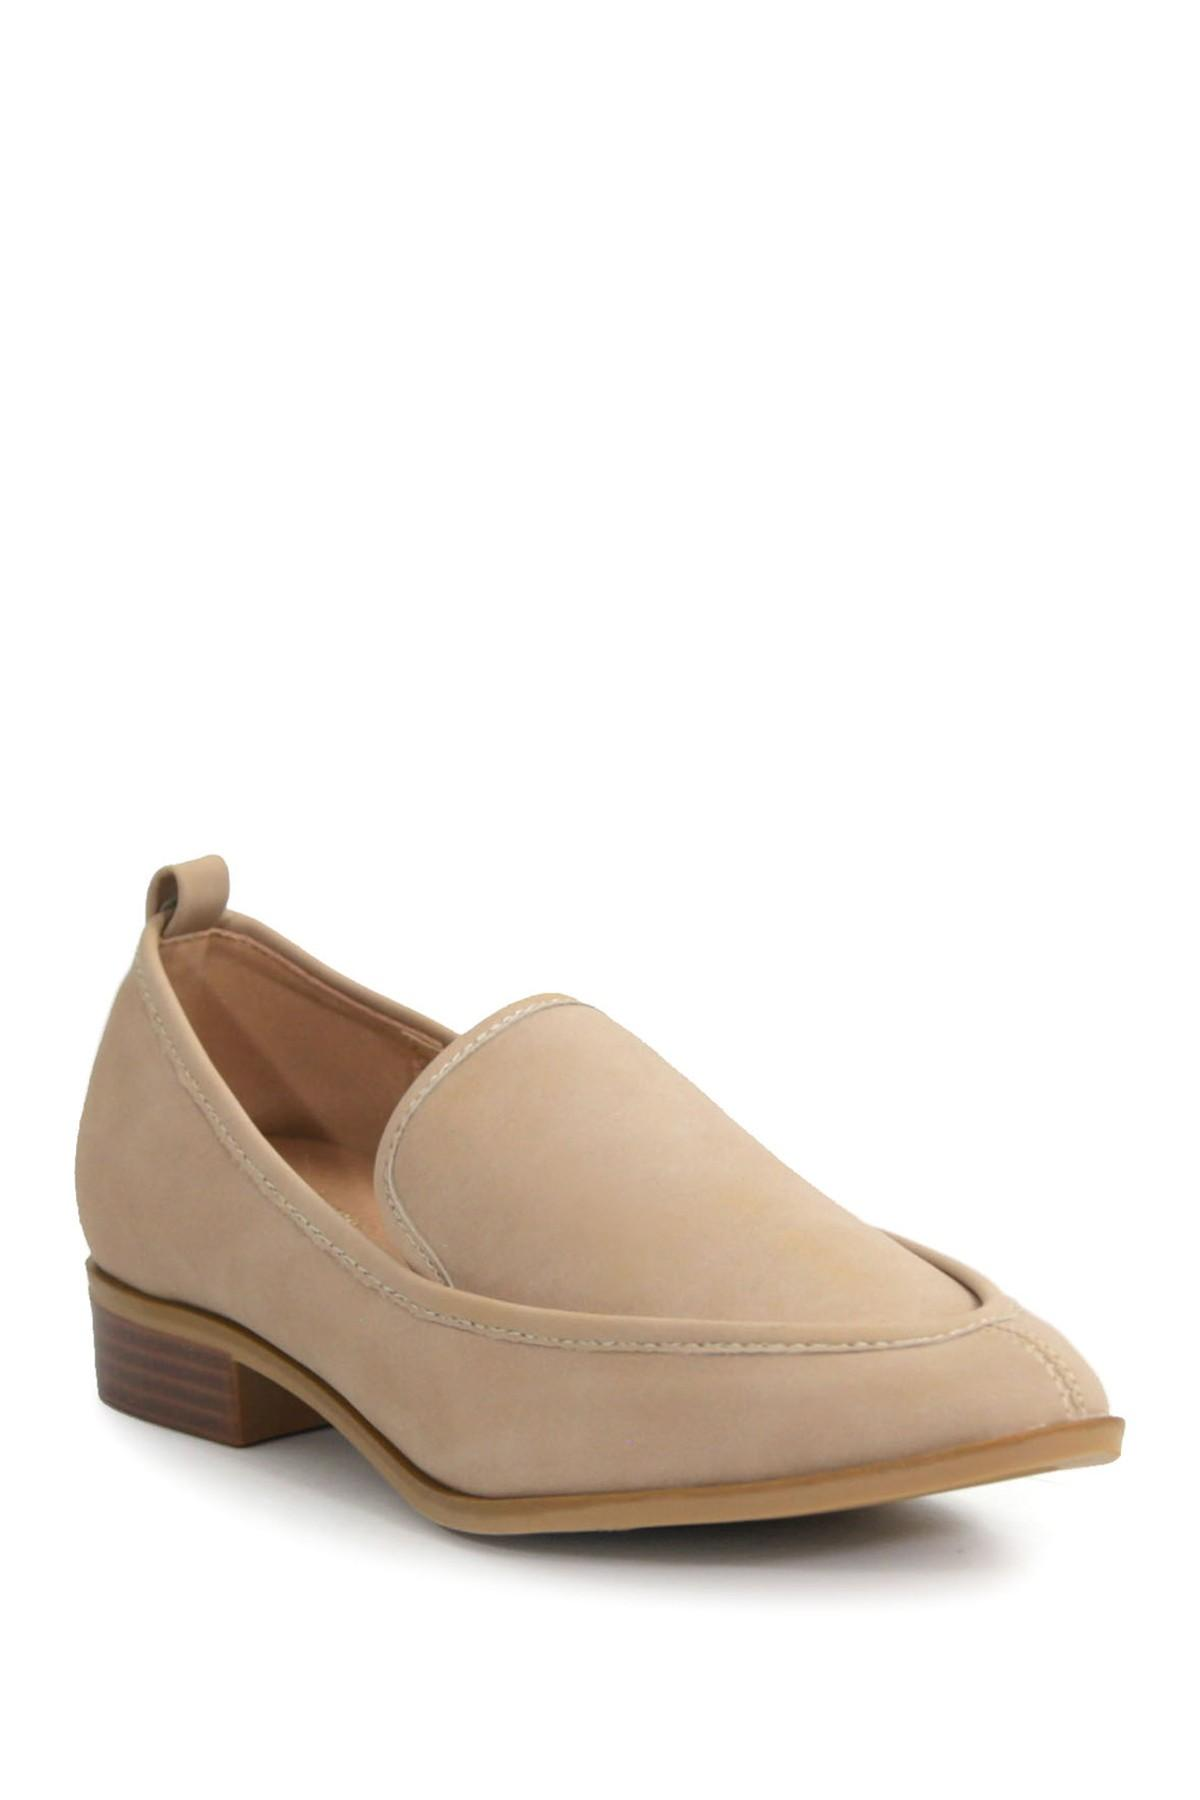 014cef3d991 Lyst - Catherine Malandrino Westly Low Heel Loafer in Brown